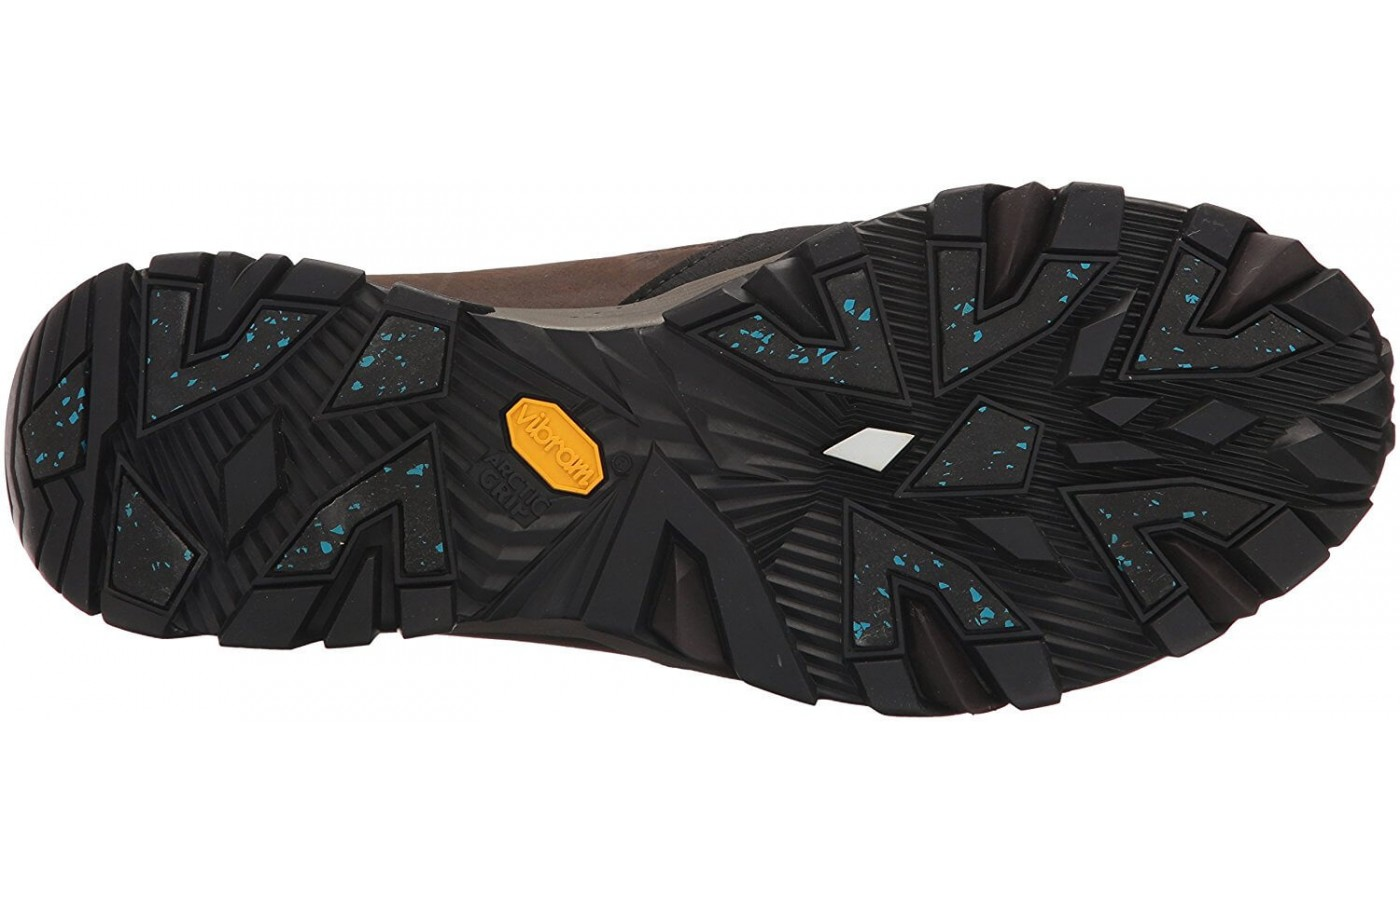 A bottom view of the Merrell ColdPack Ice.